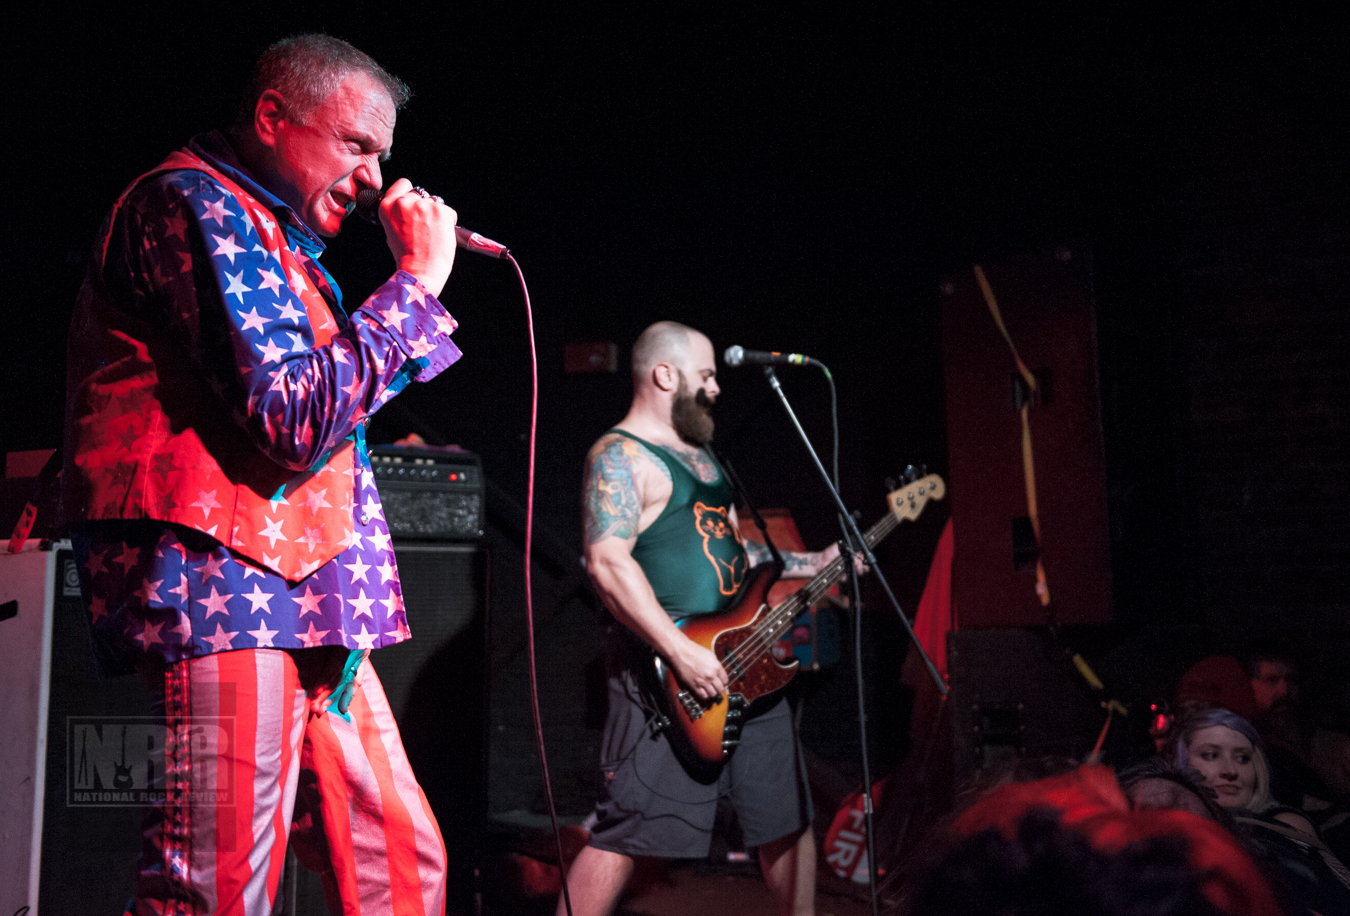 MeatMen-Branx-Portland_OR-20140605-WmRiddle-003.jpg